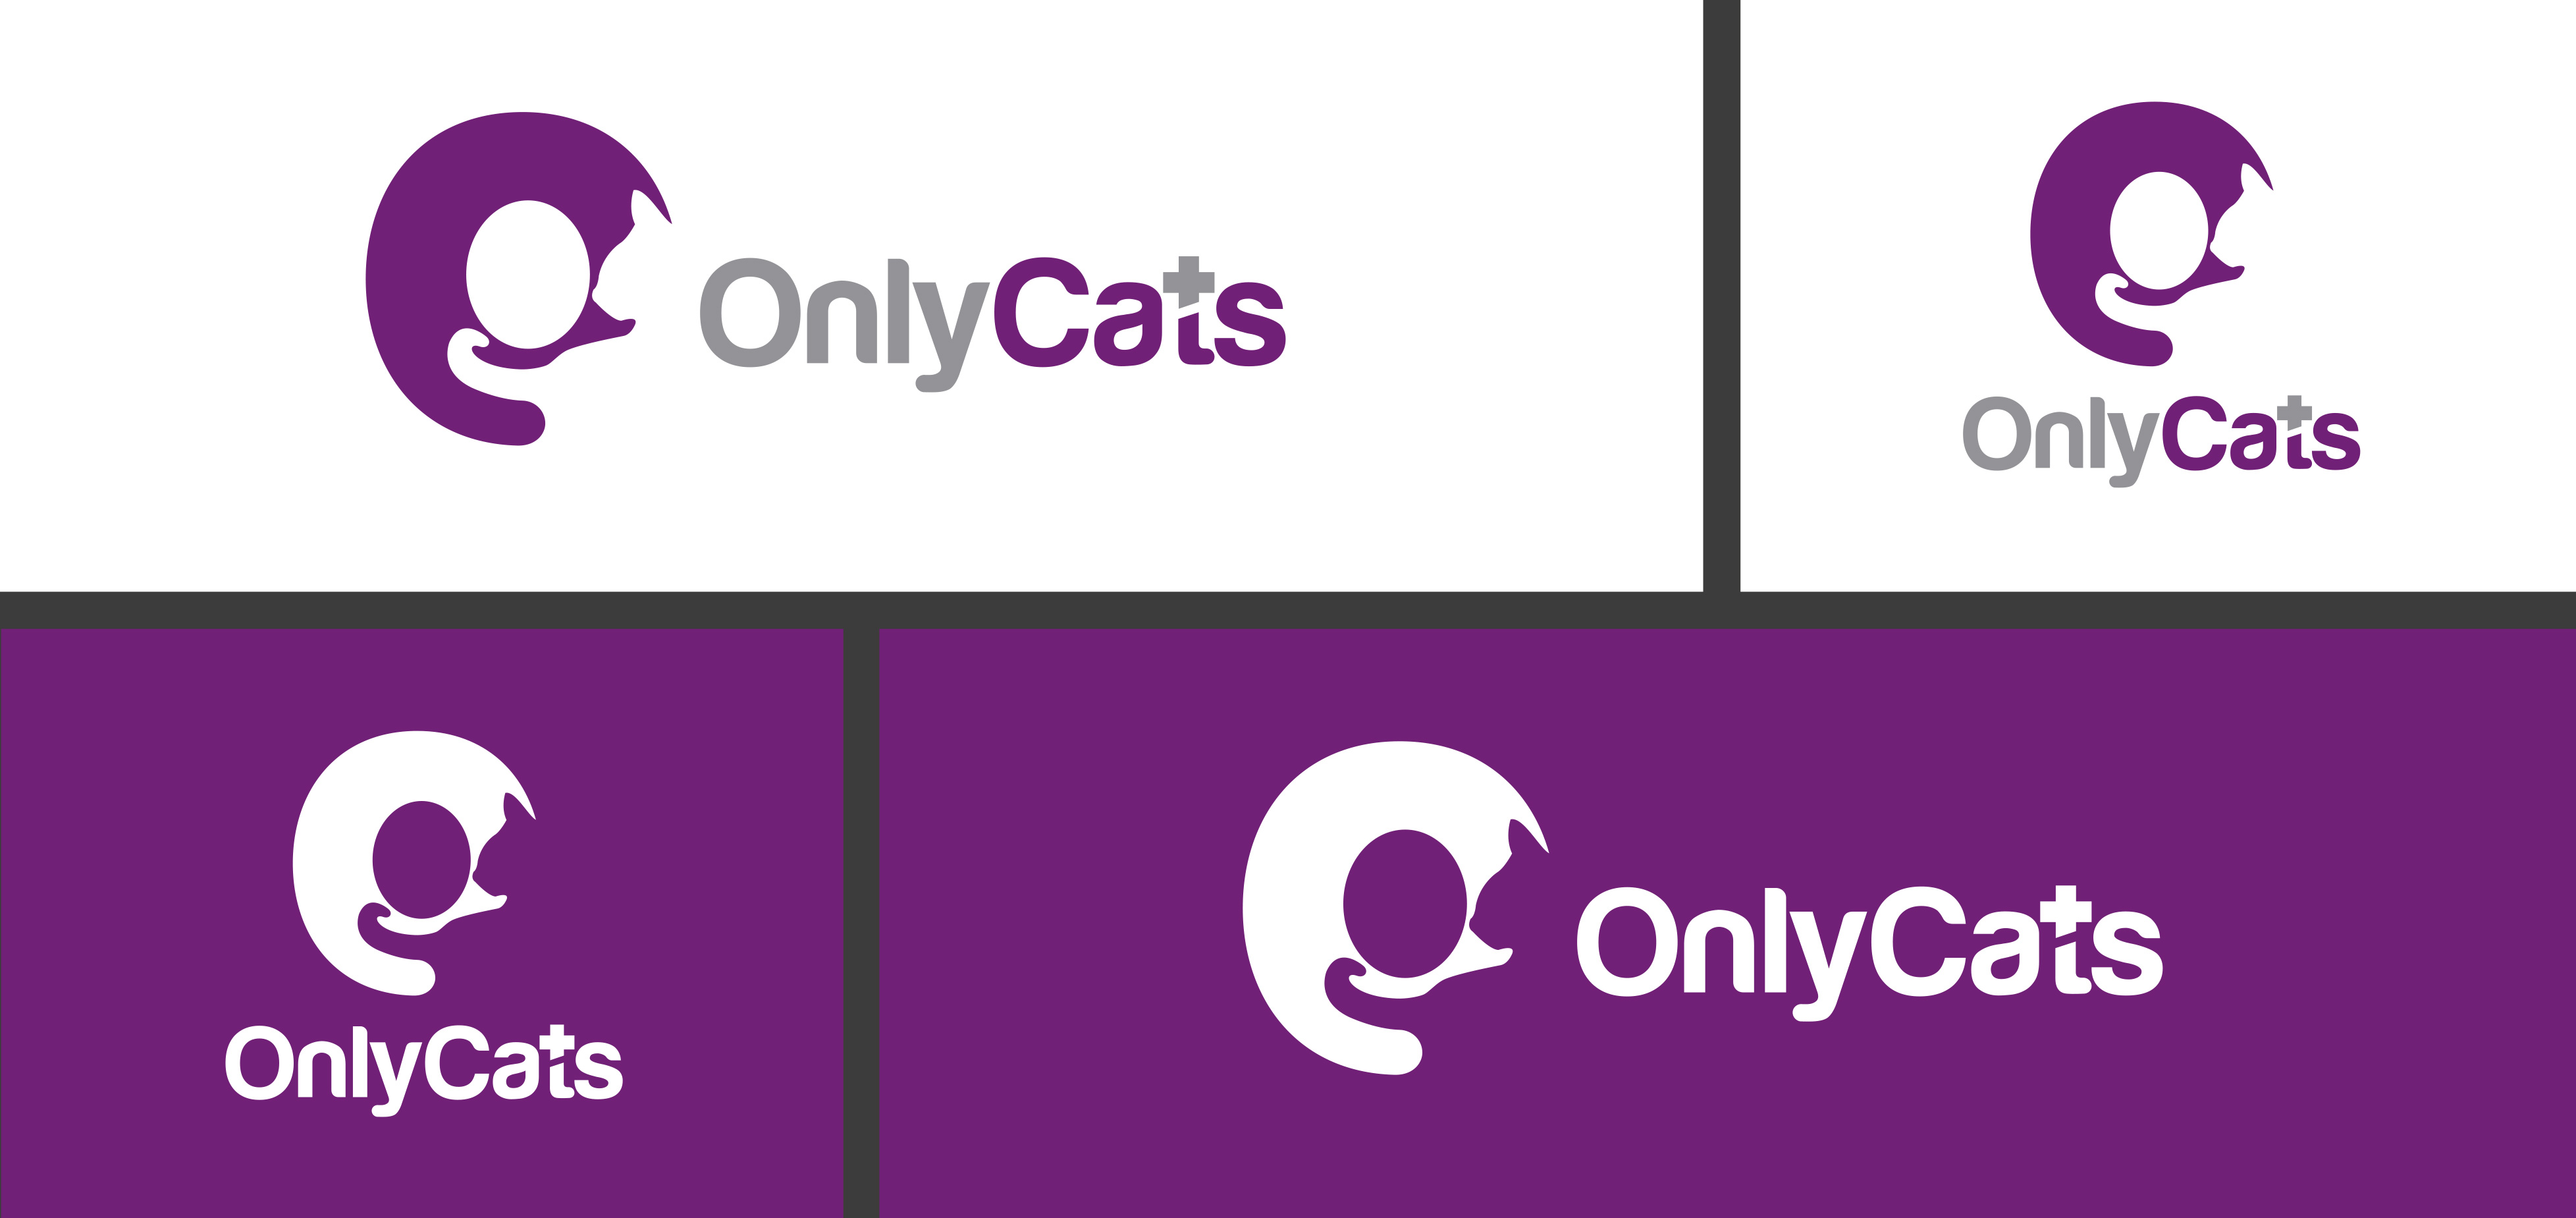 onlycats Logotipo